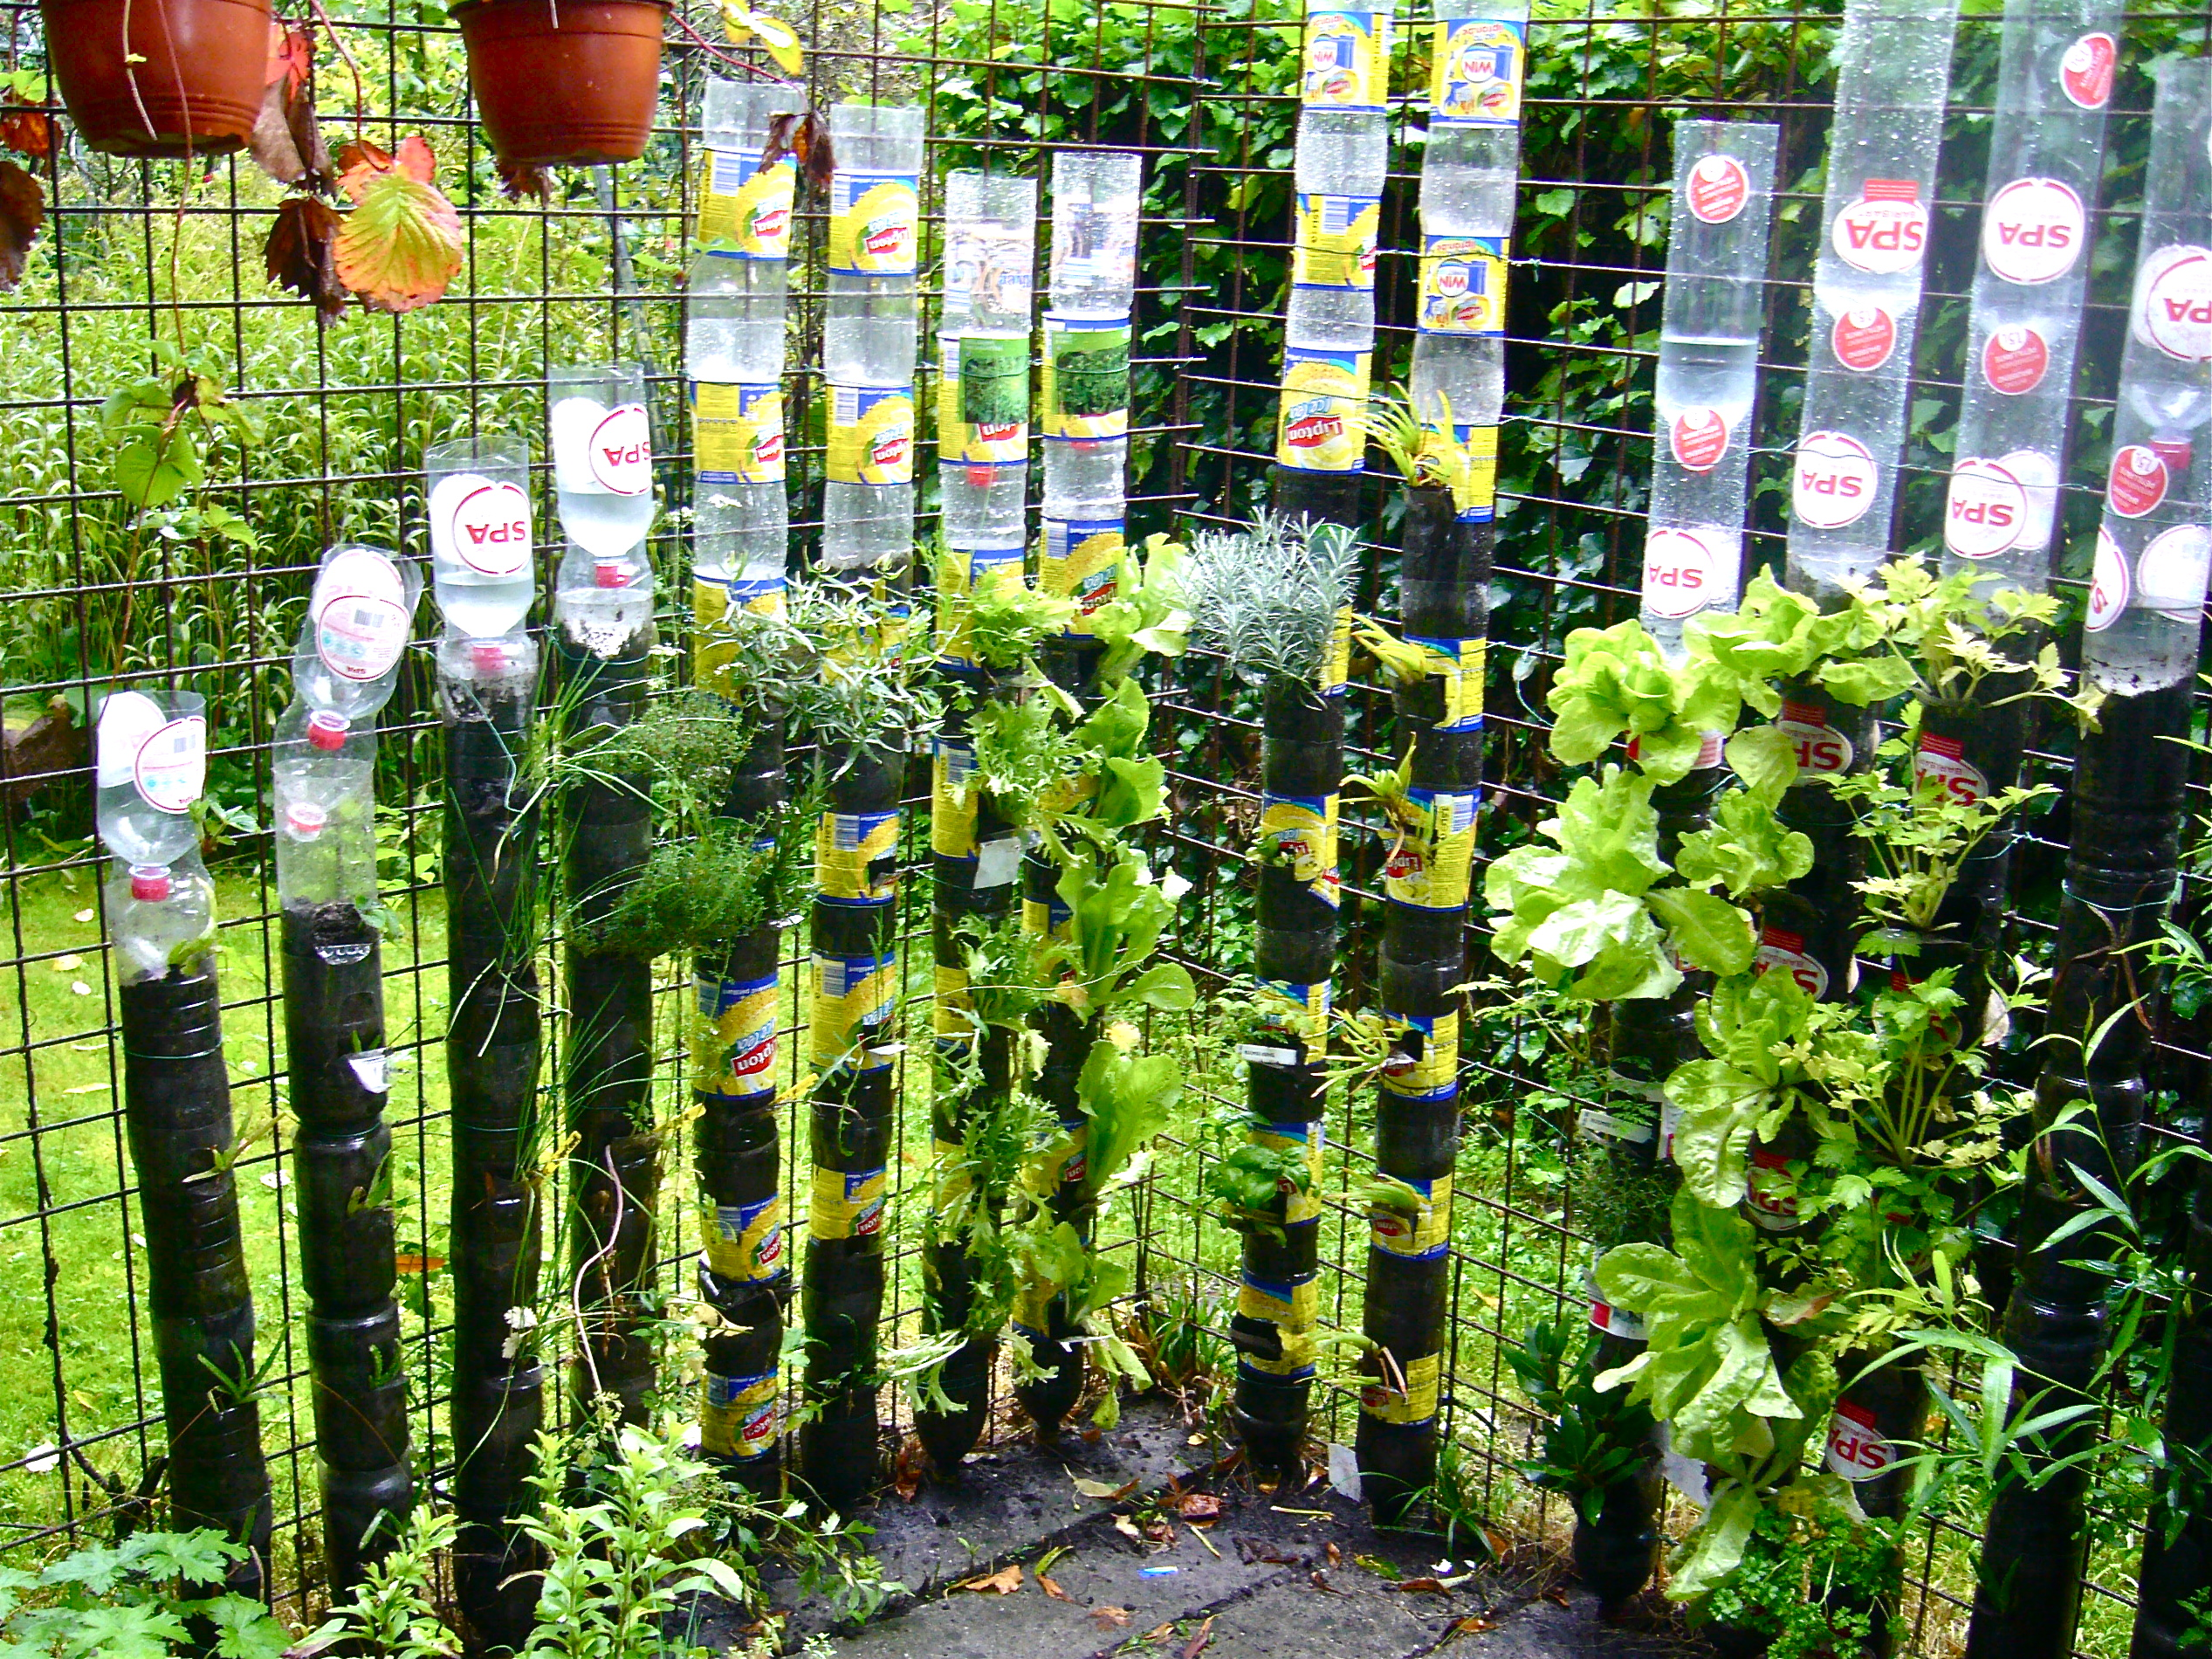 Gardening In Bottle : in the drylands: How to build a bottle tower for container gardening ...